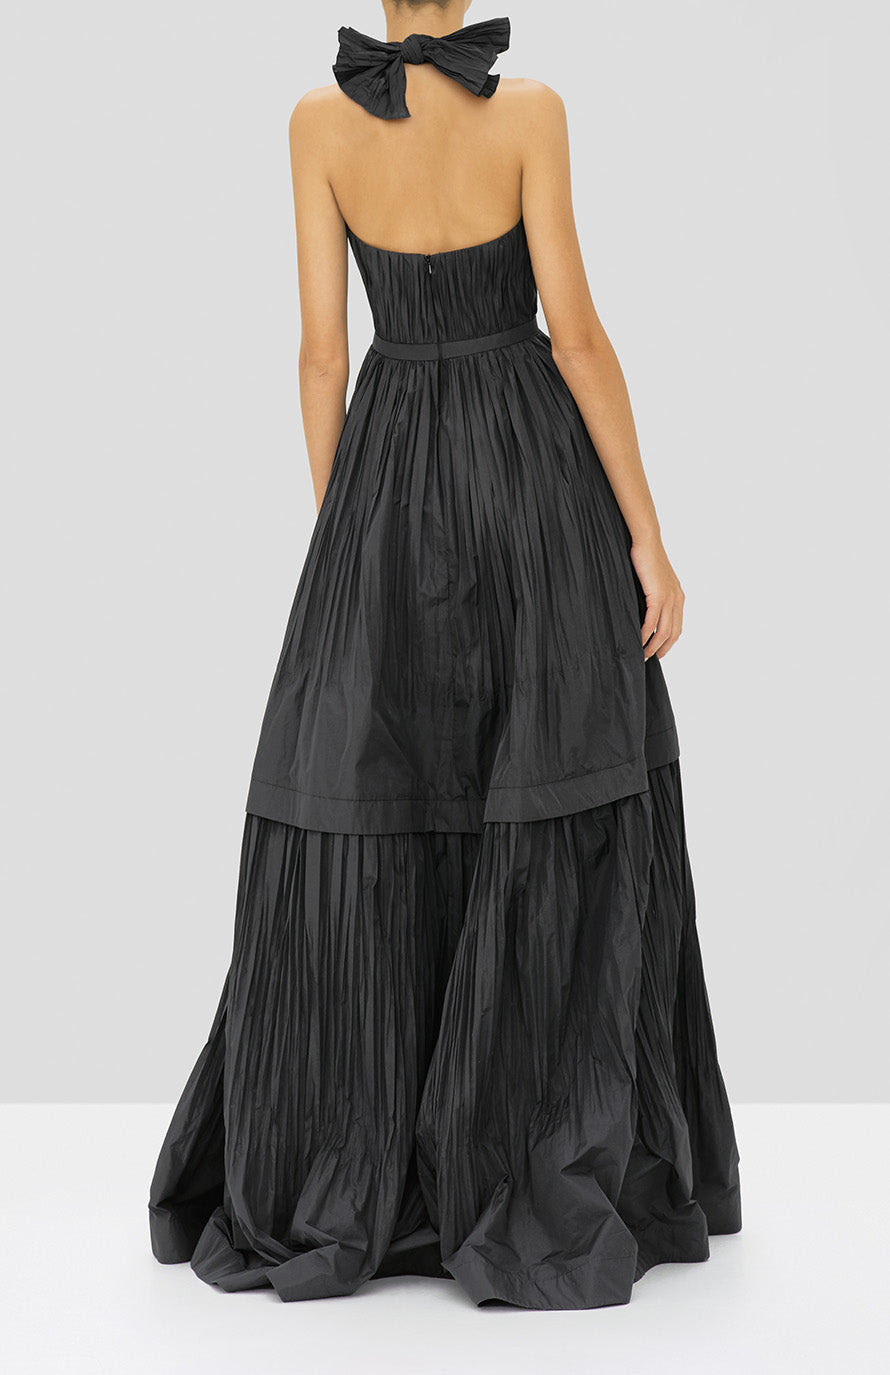 Alexis Tressa Gown in Black from the Holiday 2019 Ready To Wear Collection - Rear View